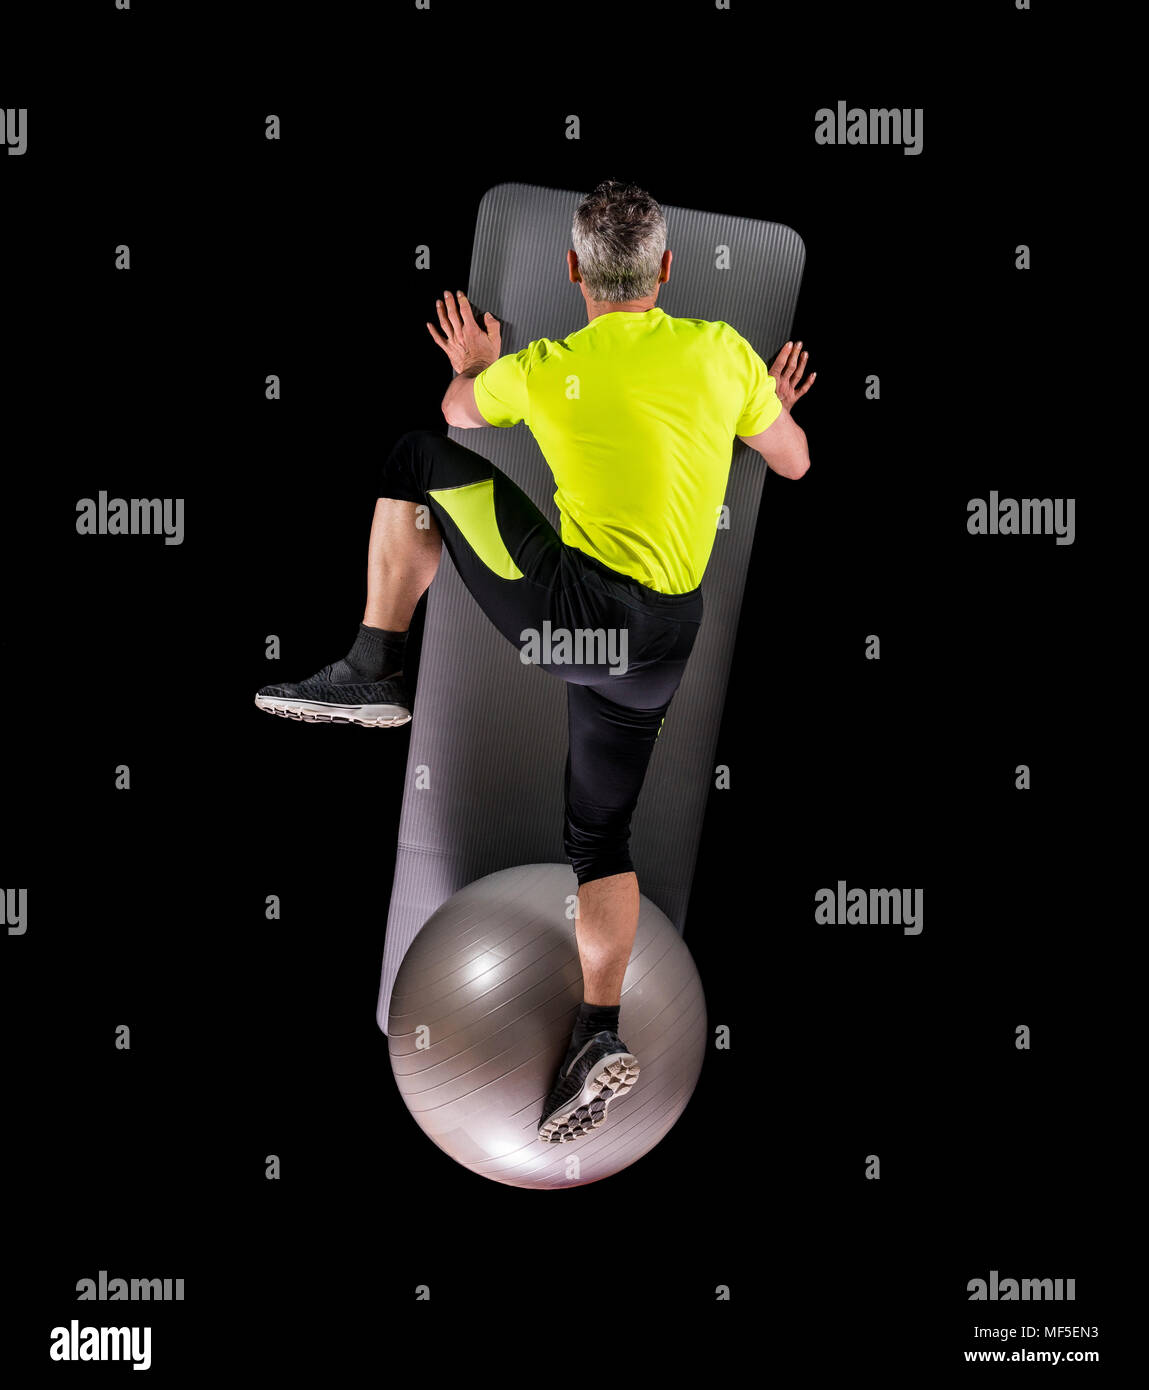 Man exercising with gymnastics ball, top view - Stock Image